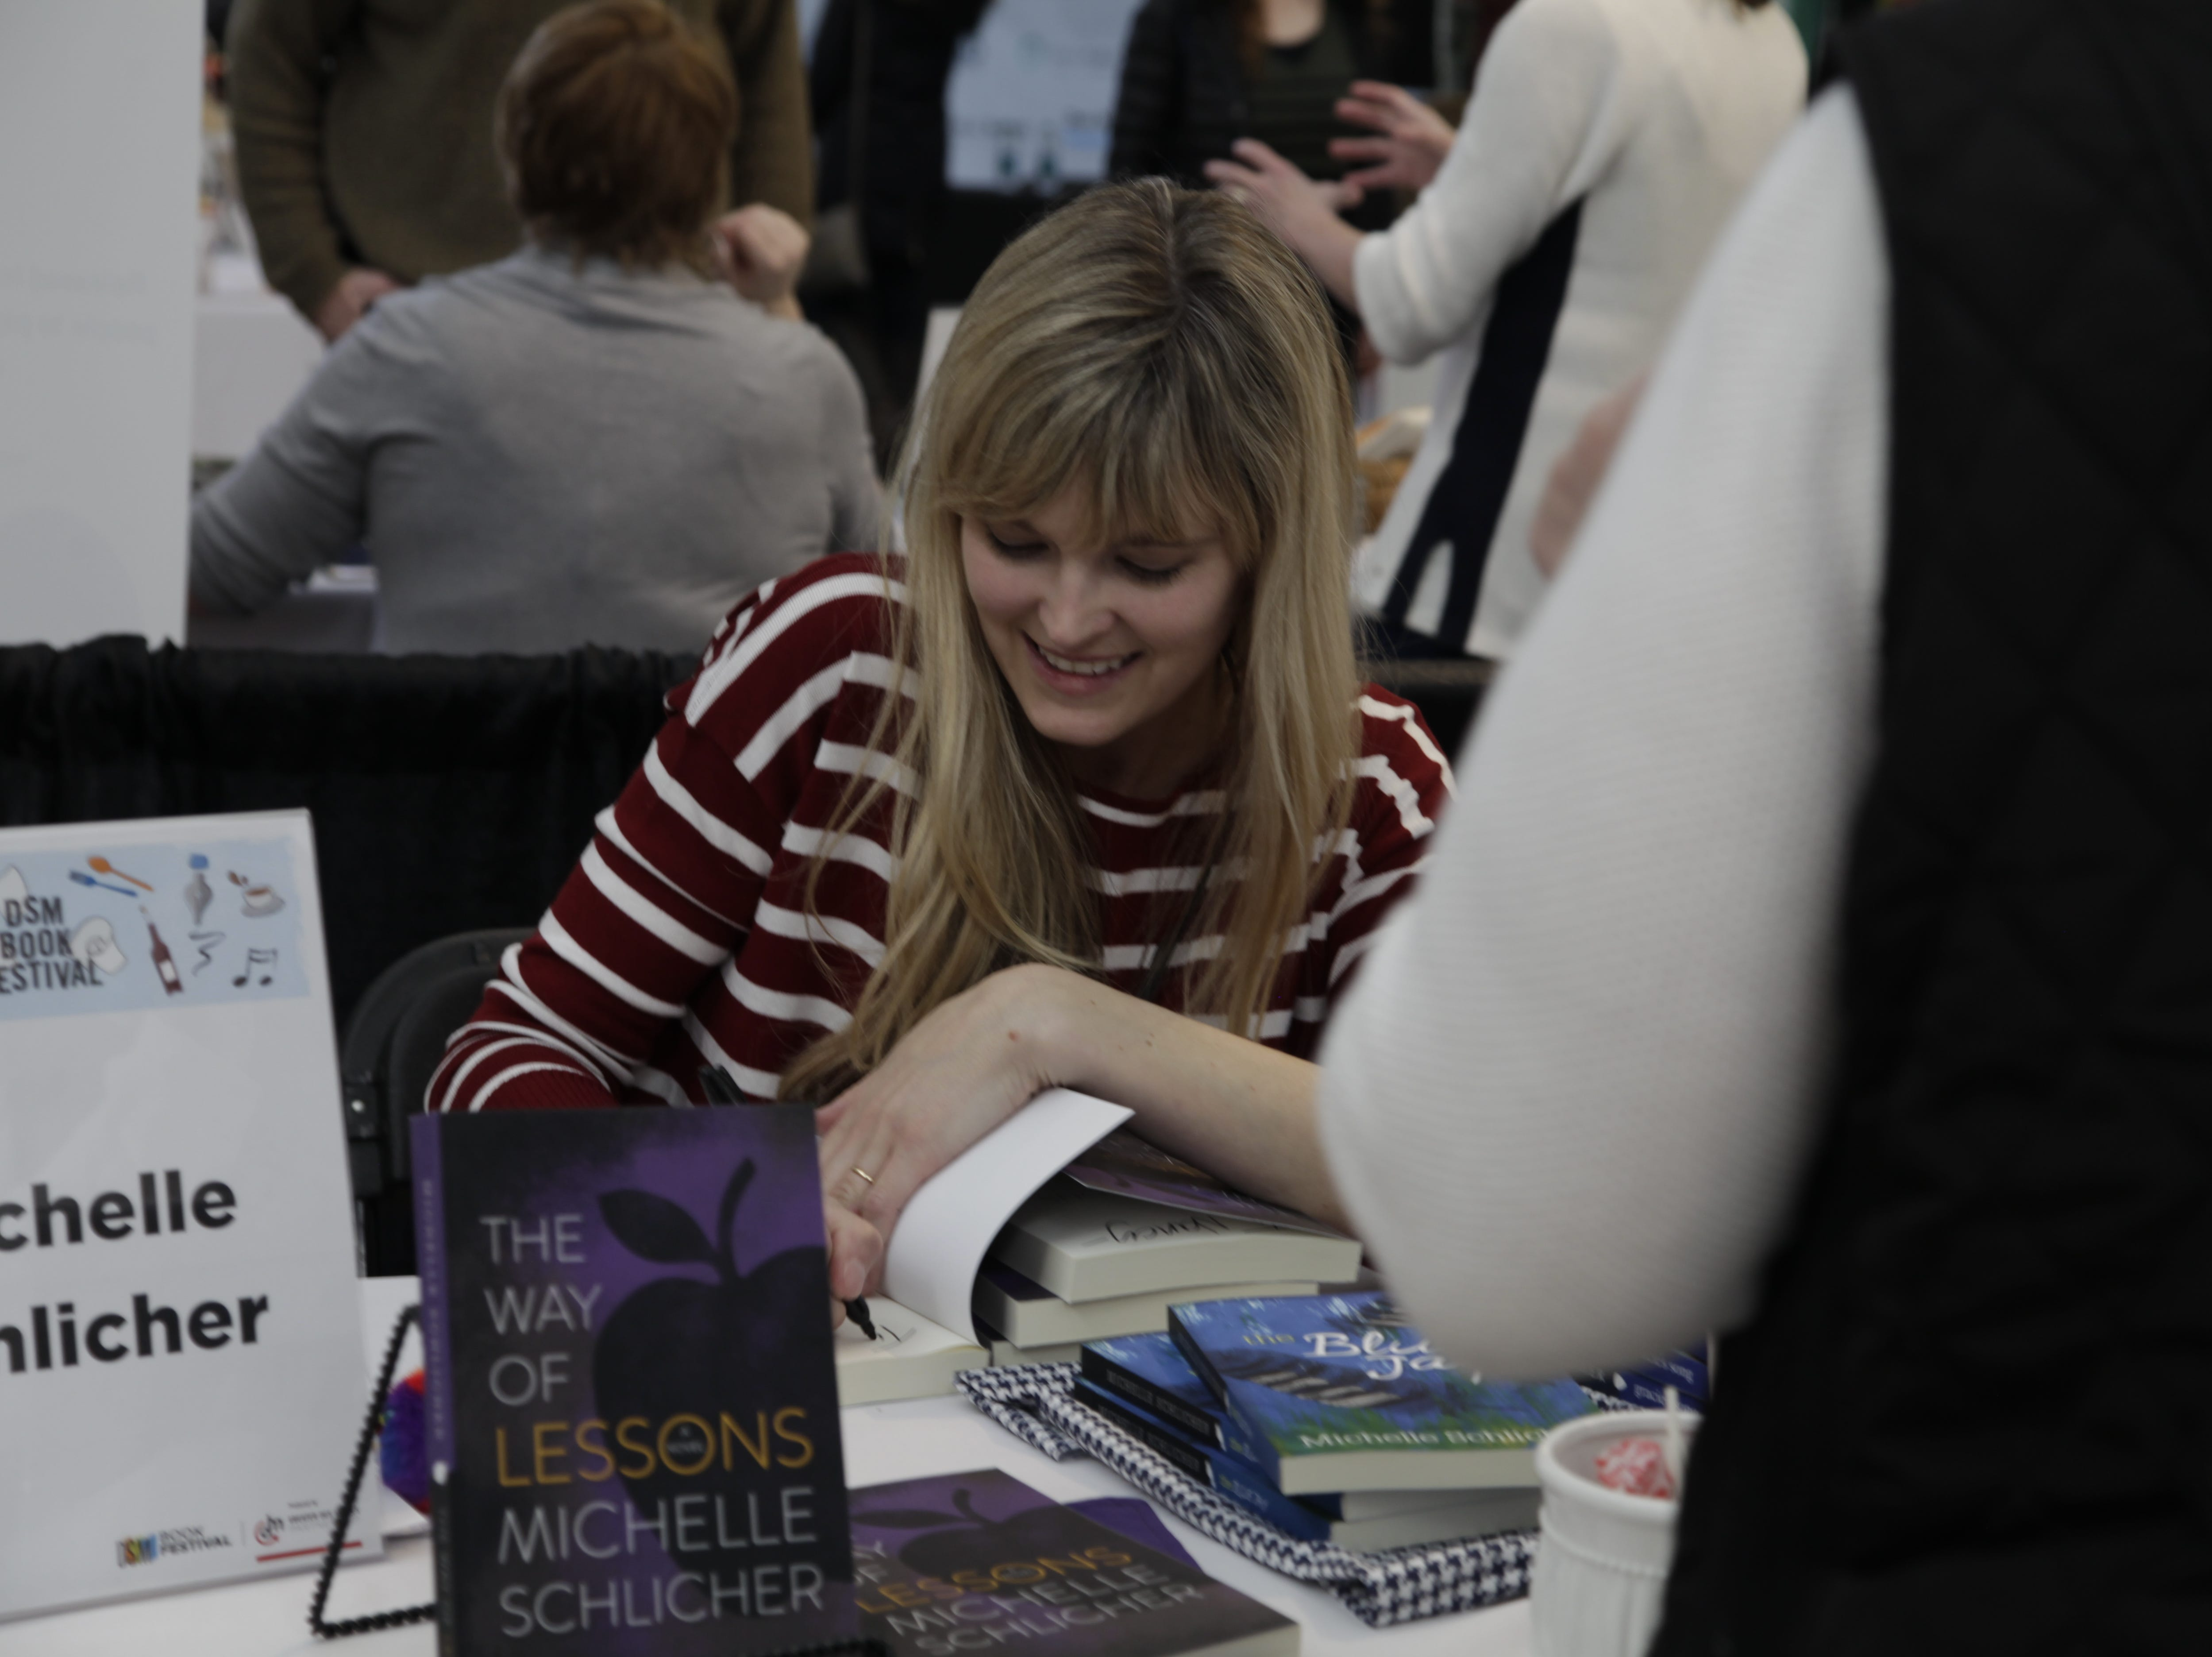 Ankeny author Michelle Schlicher signs a book at the DSM Book Festival downtown on Saturday, March 30, 2019.